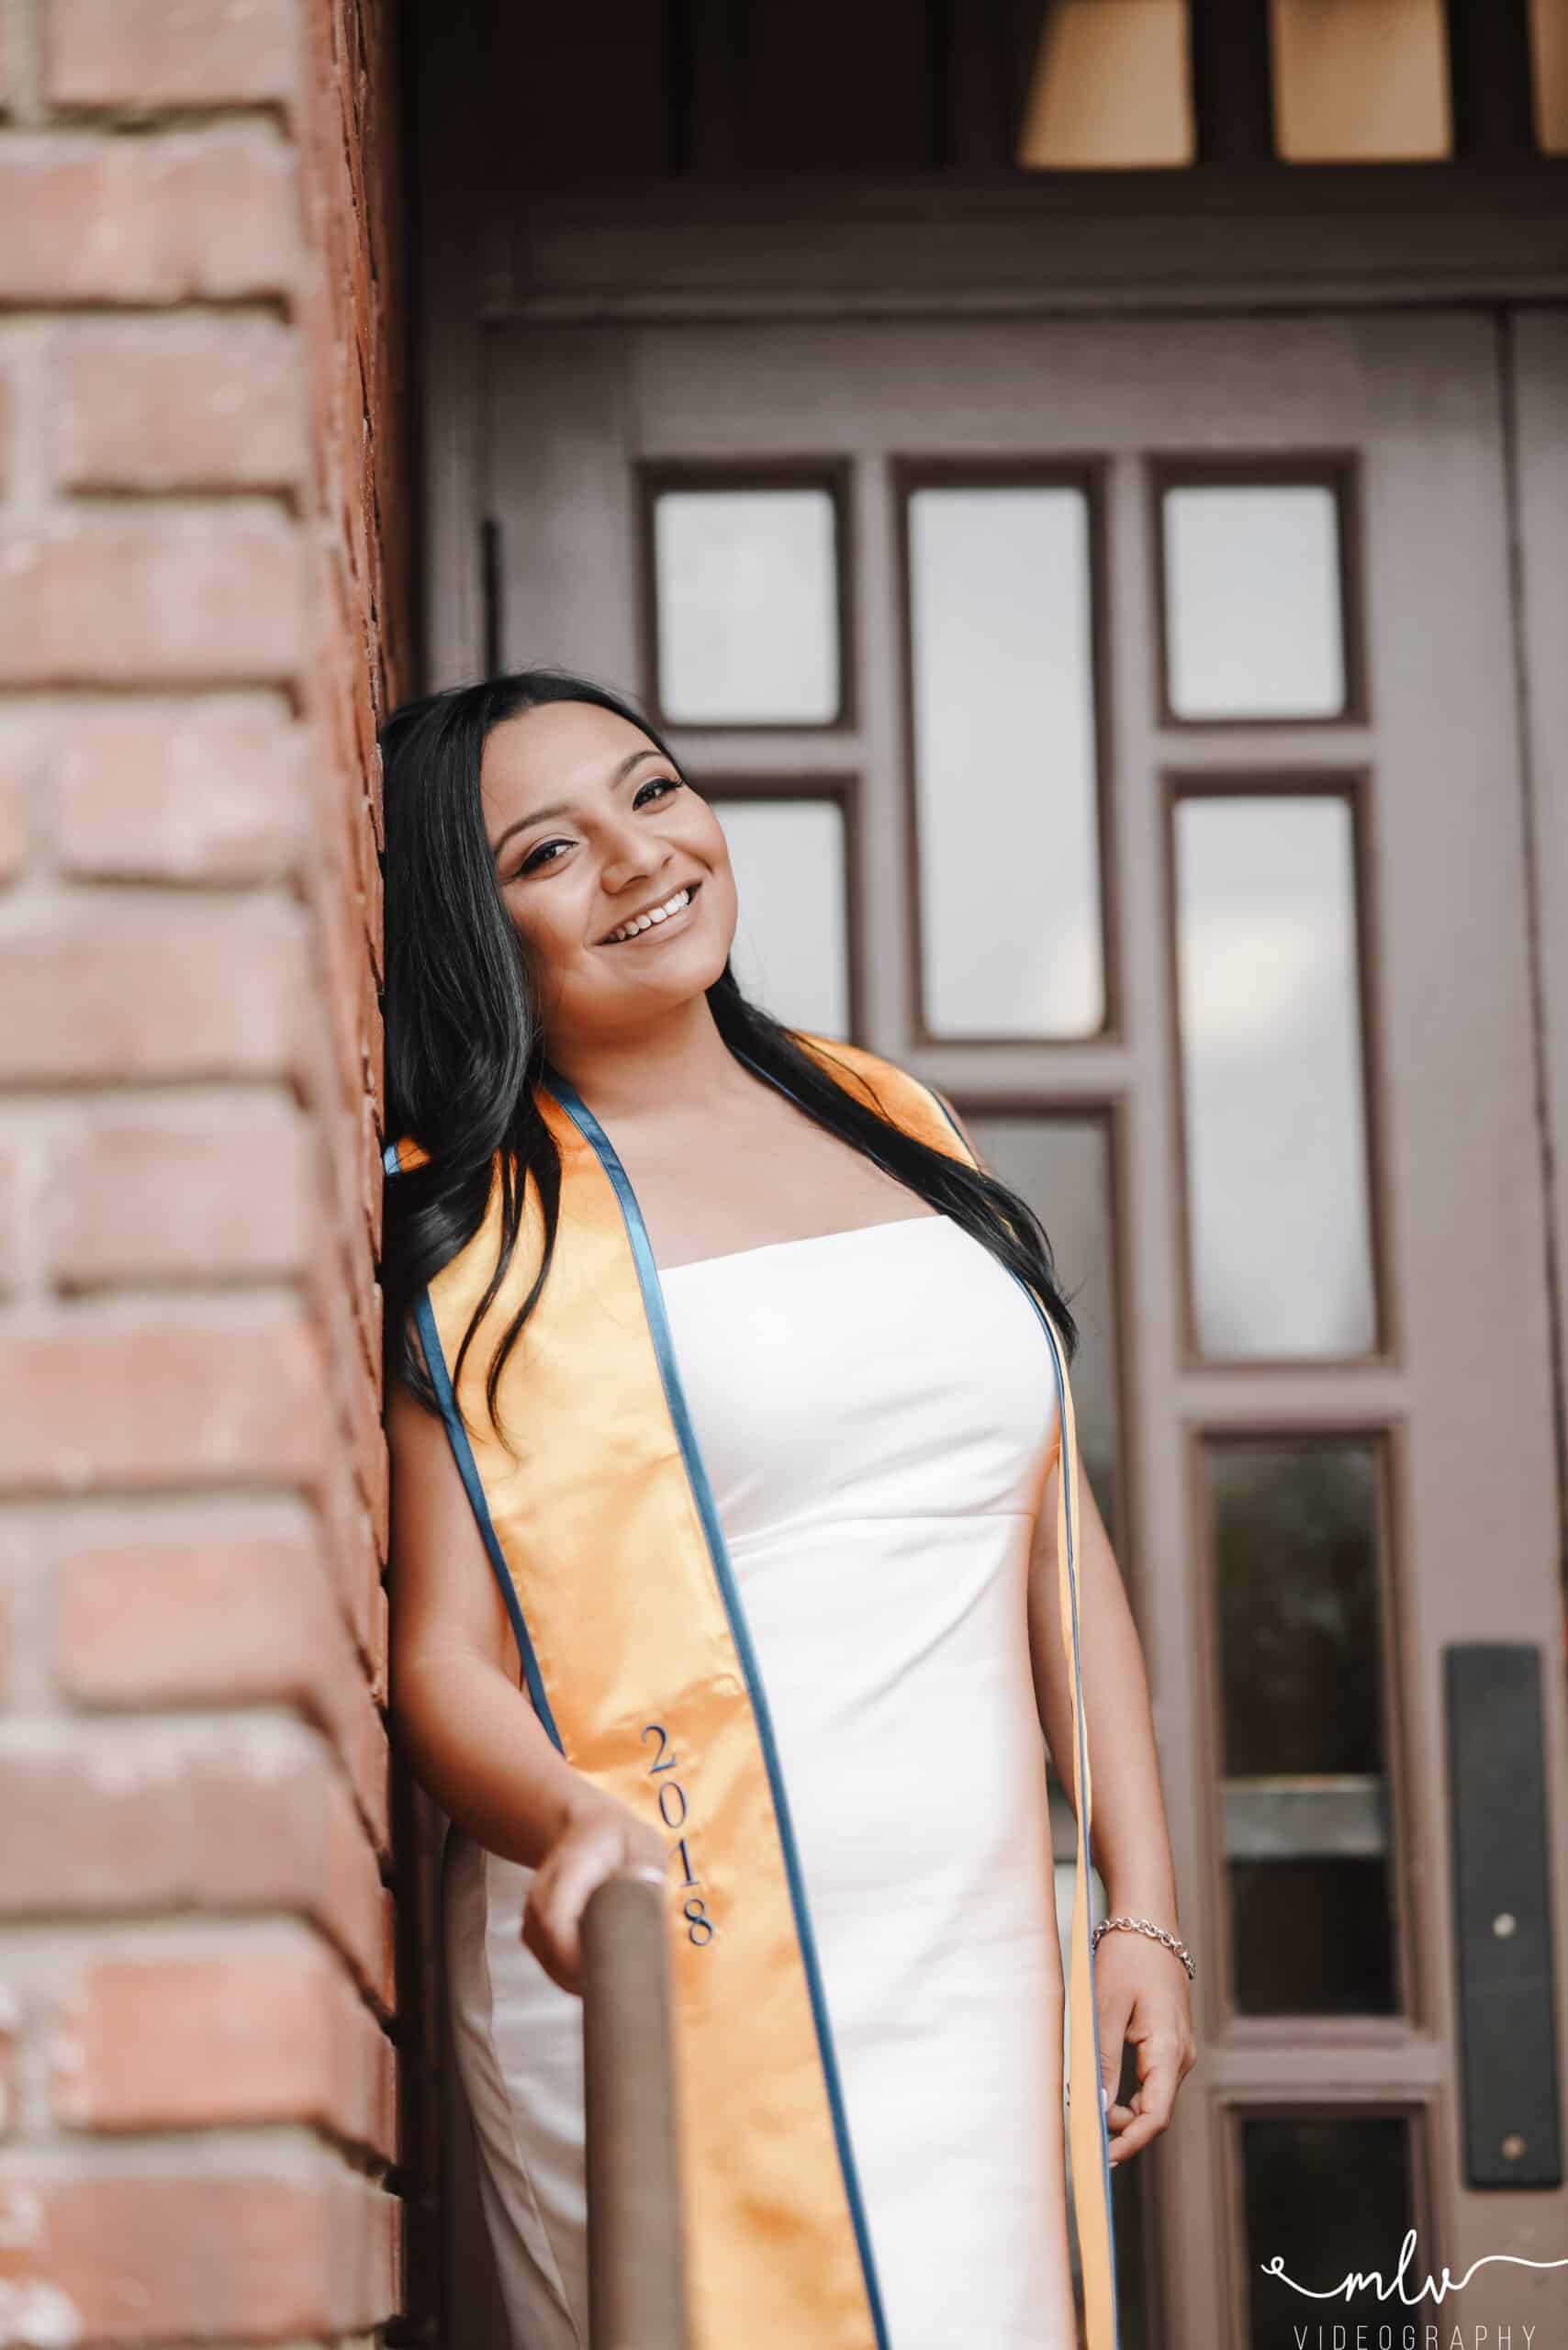 Graduation photography at San Jose State University with Andrea Solorio